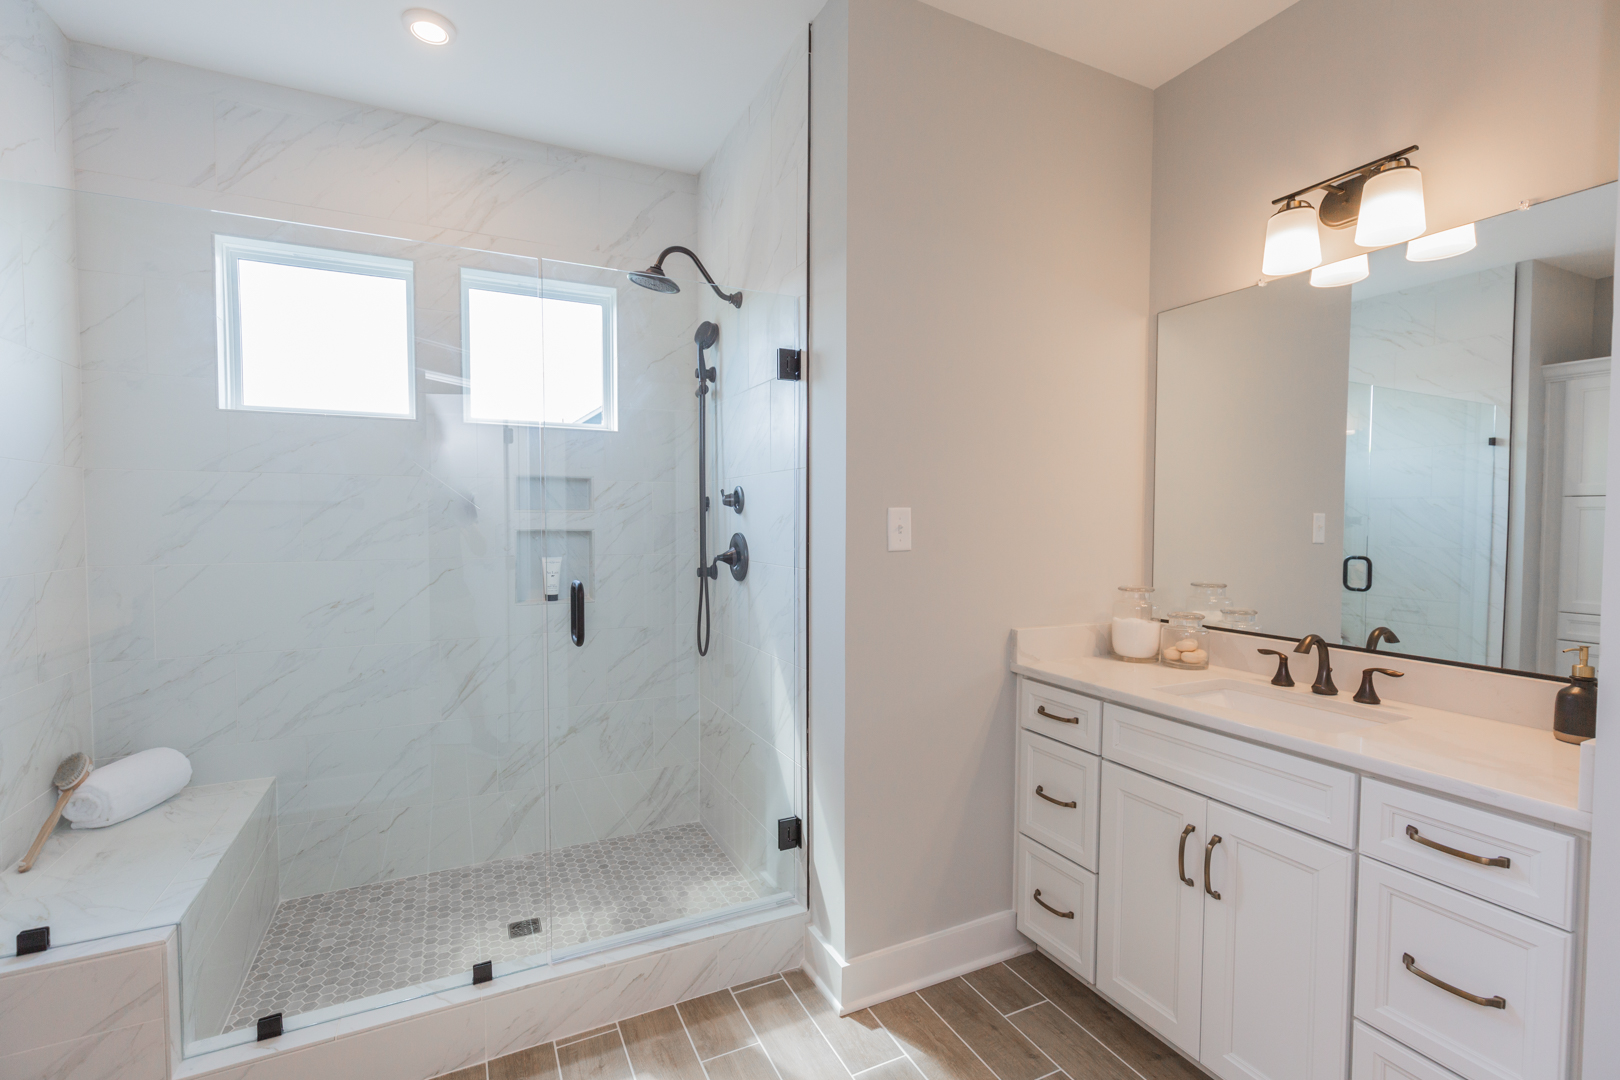 roanoke-meadowville landing-interior bath.jpg